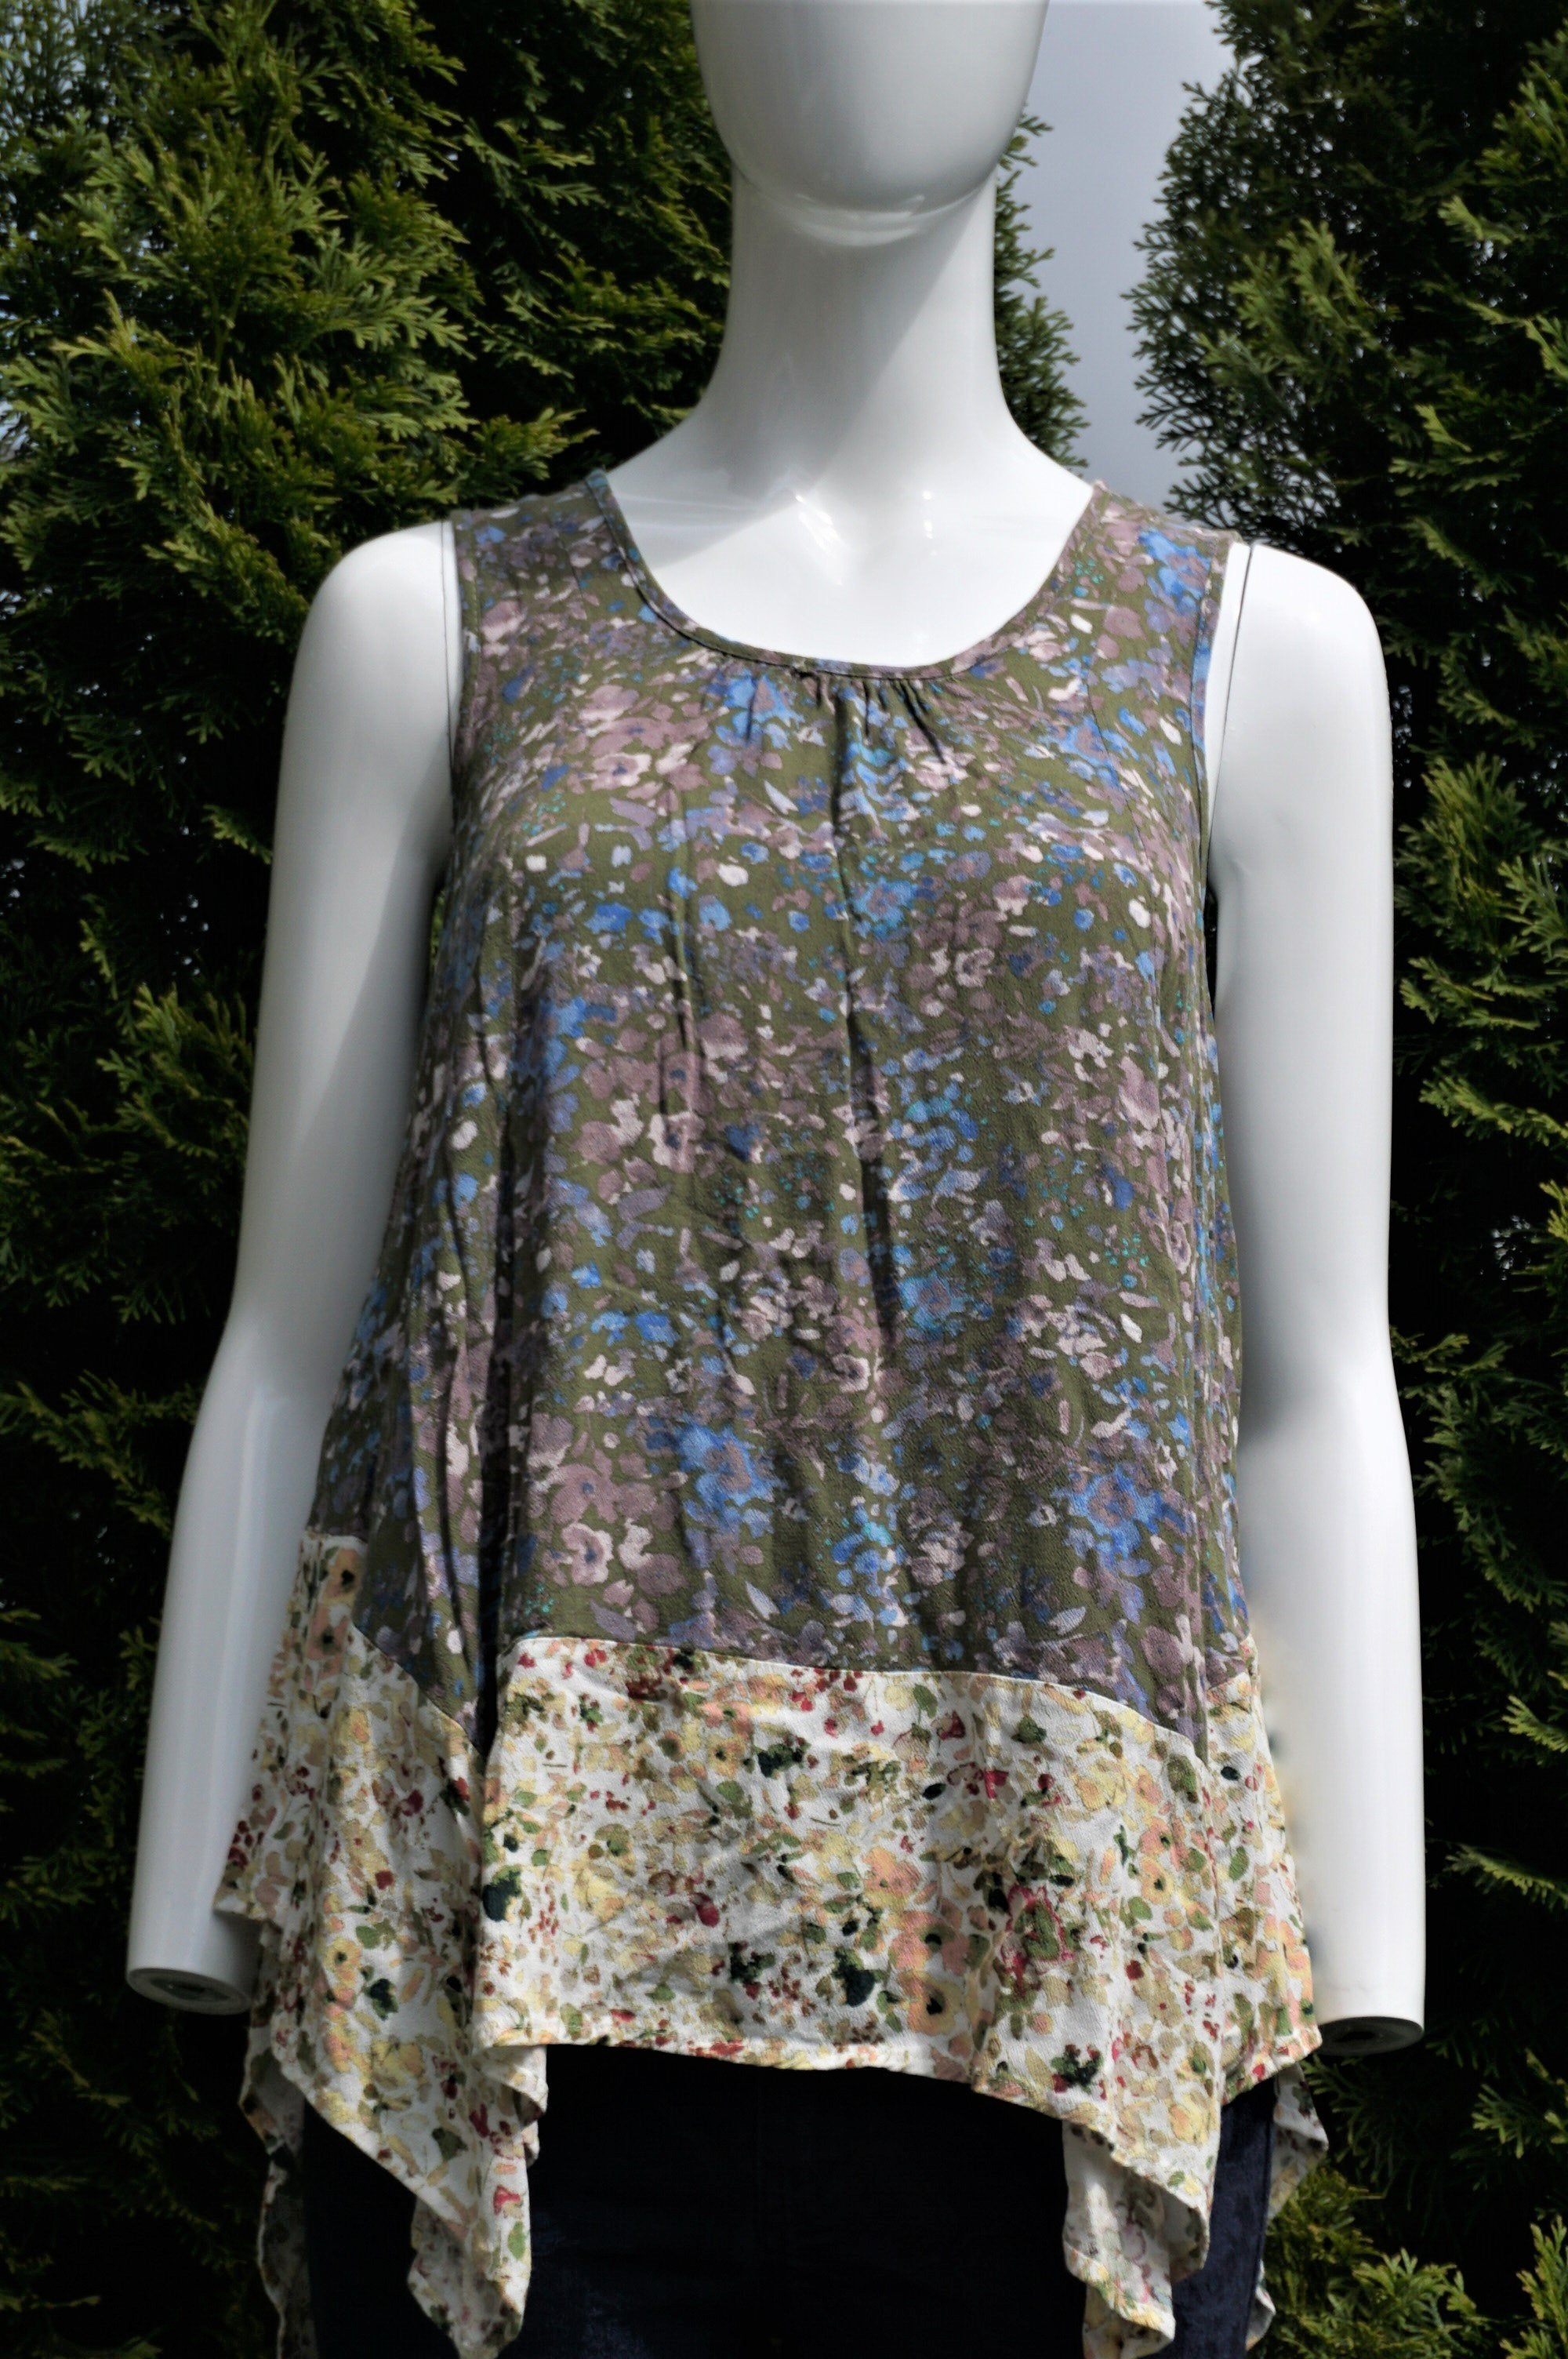 Flint & Moss New York Floral Tank Top Blouse, Vibrant boho floral design with high low hem., Green, 100% Rayon, women's Tops, women's Green Tops, Flint & Moss New York women's Tops, tank top blouse, floral flowy shirt, medium size top, summer tank top, summer tank top blouse